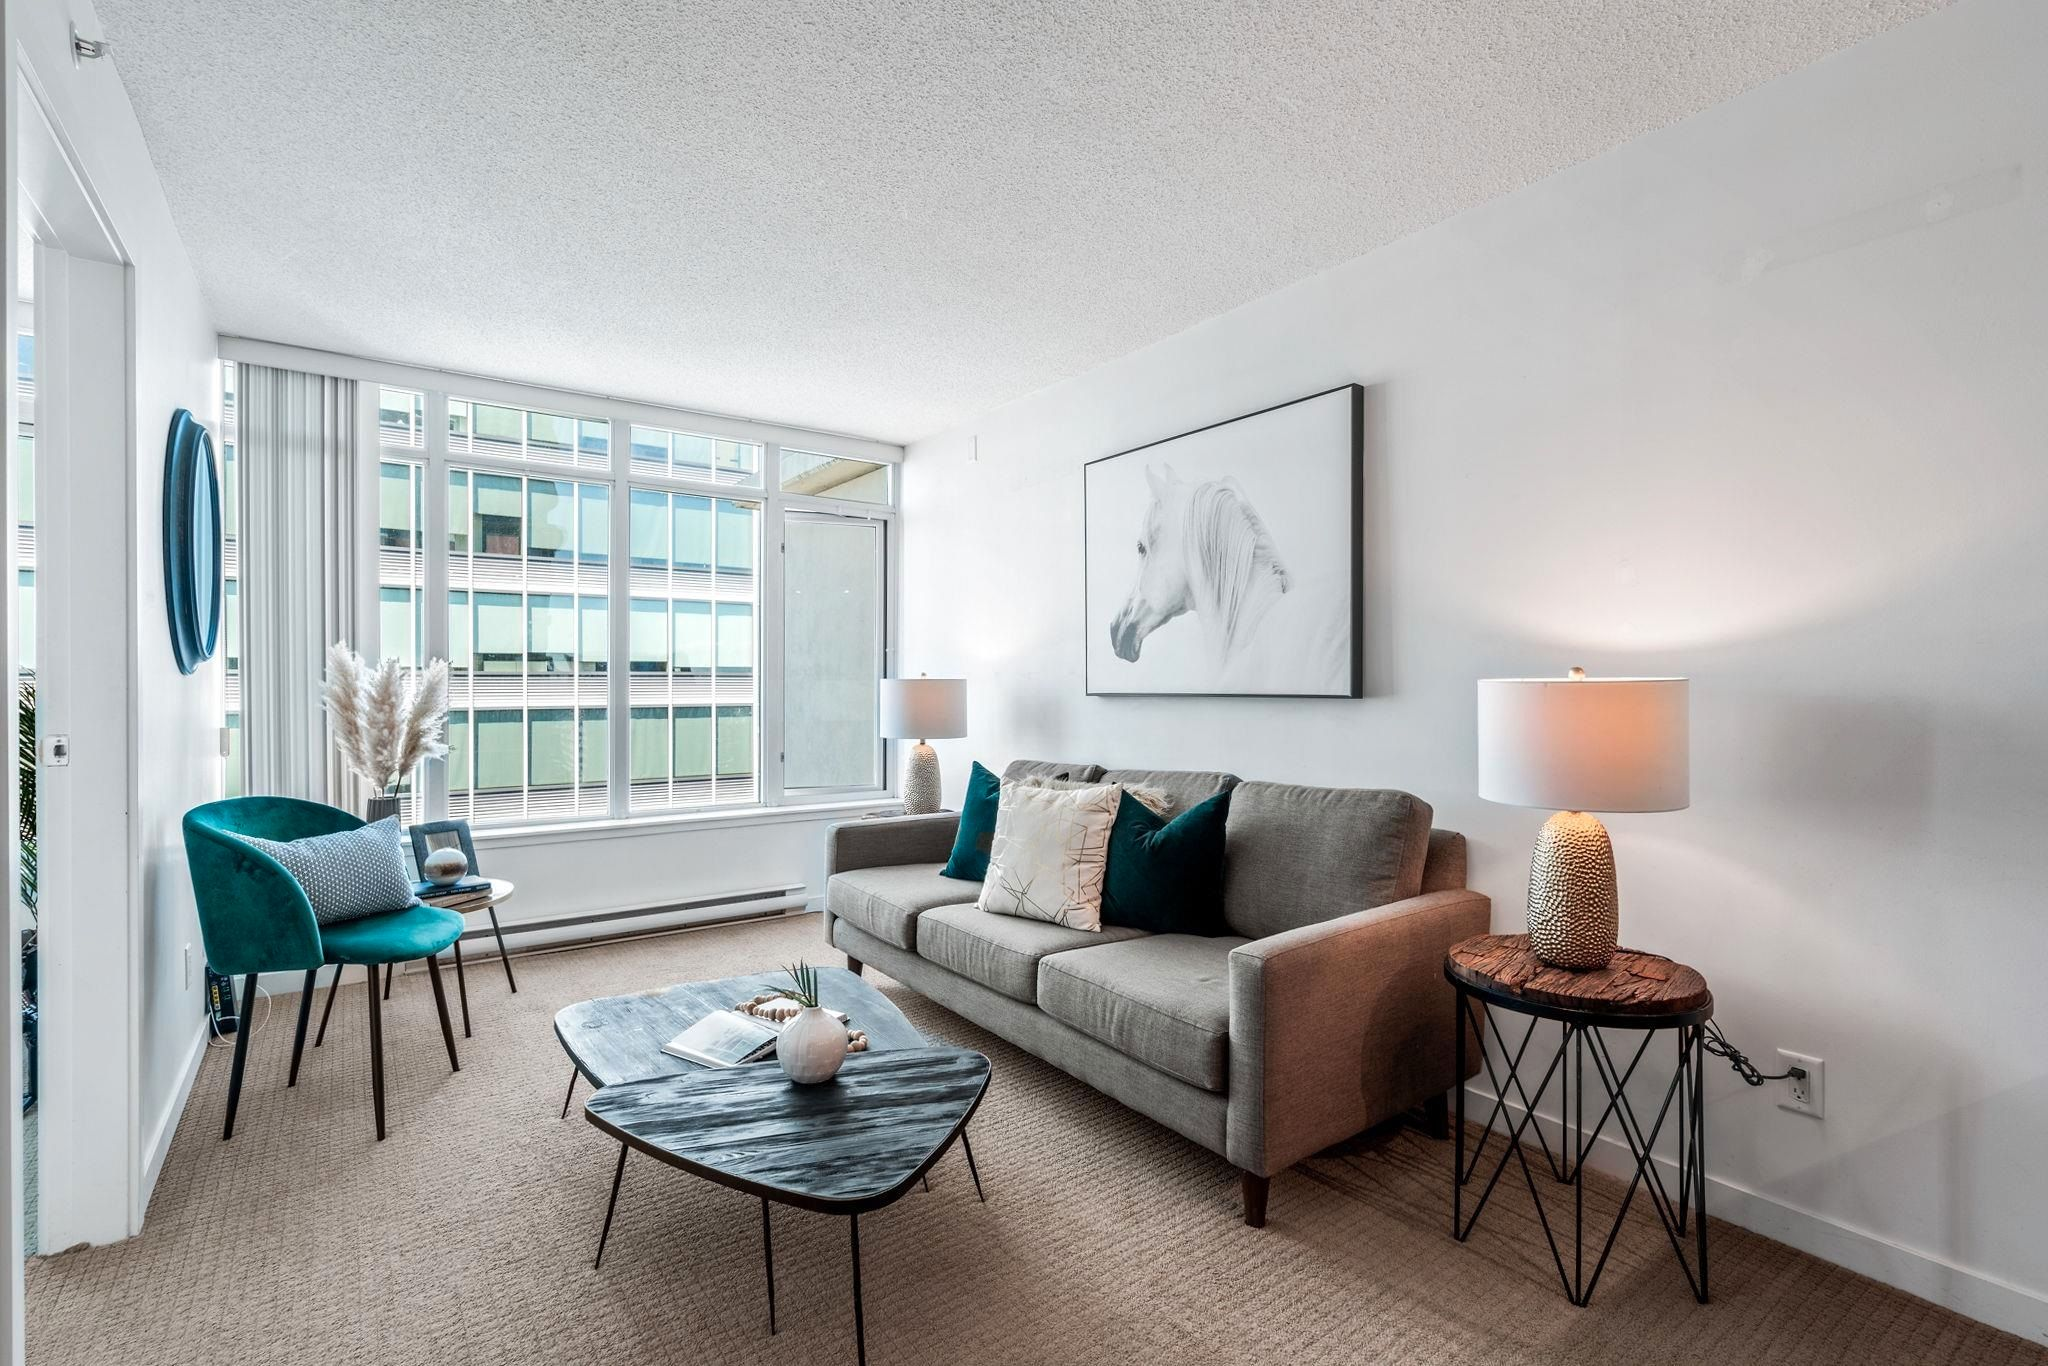 Main Photo: 2506 610 GRANVILLE STREET in Vancouver: Downtown VW Condo for sale (Vancouver West)  : MLS®# R2610415